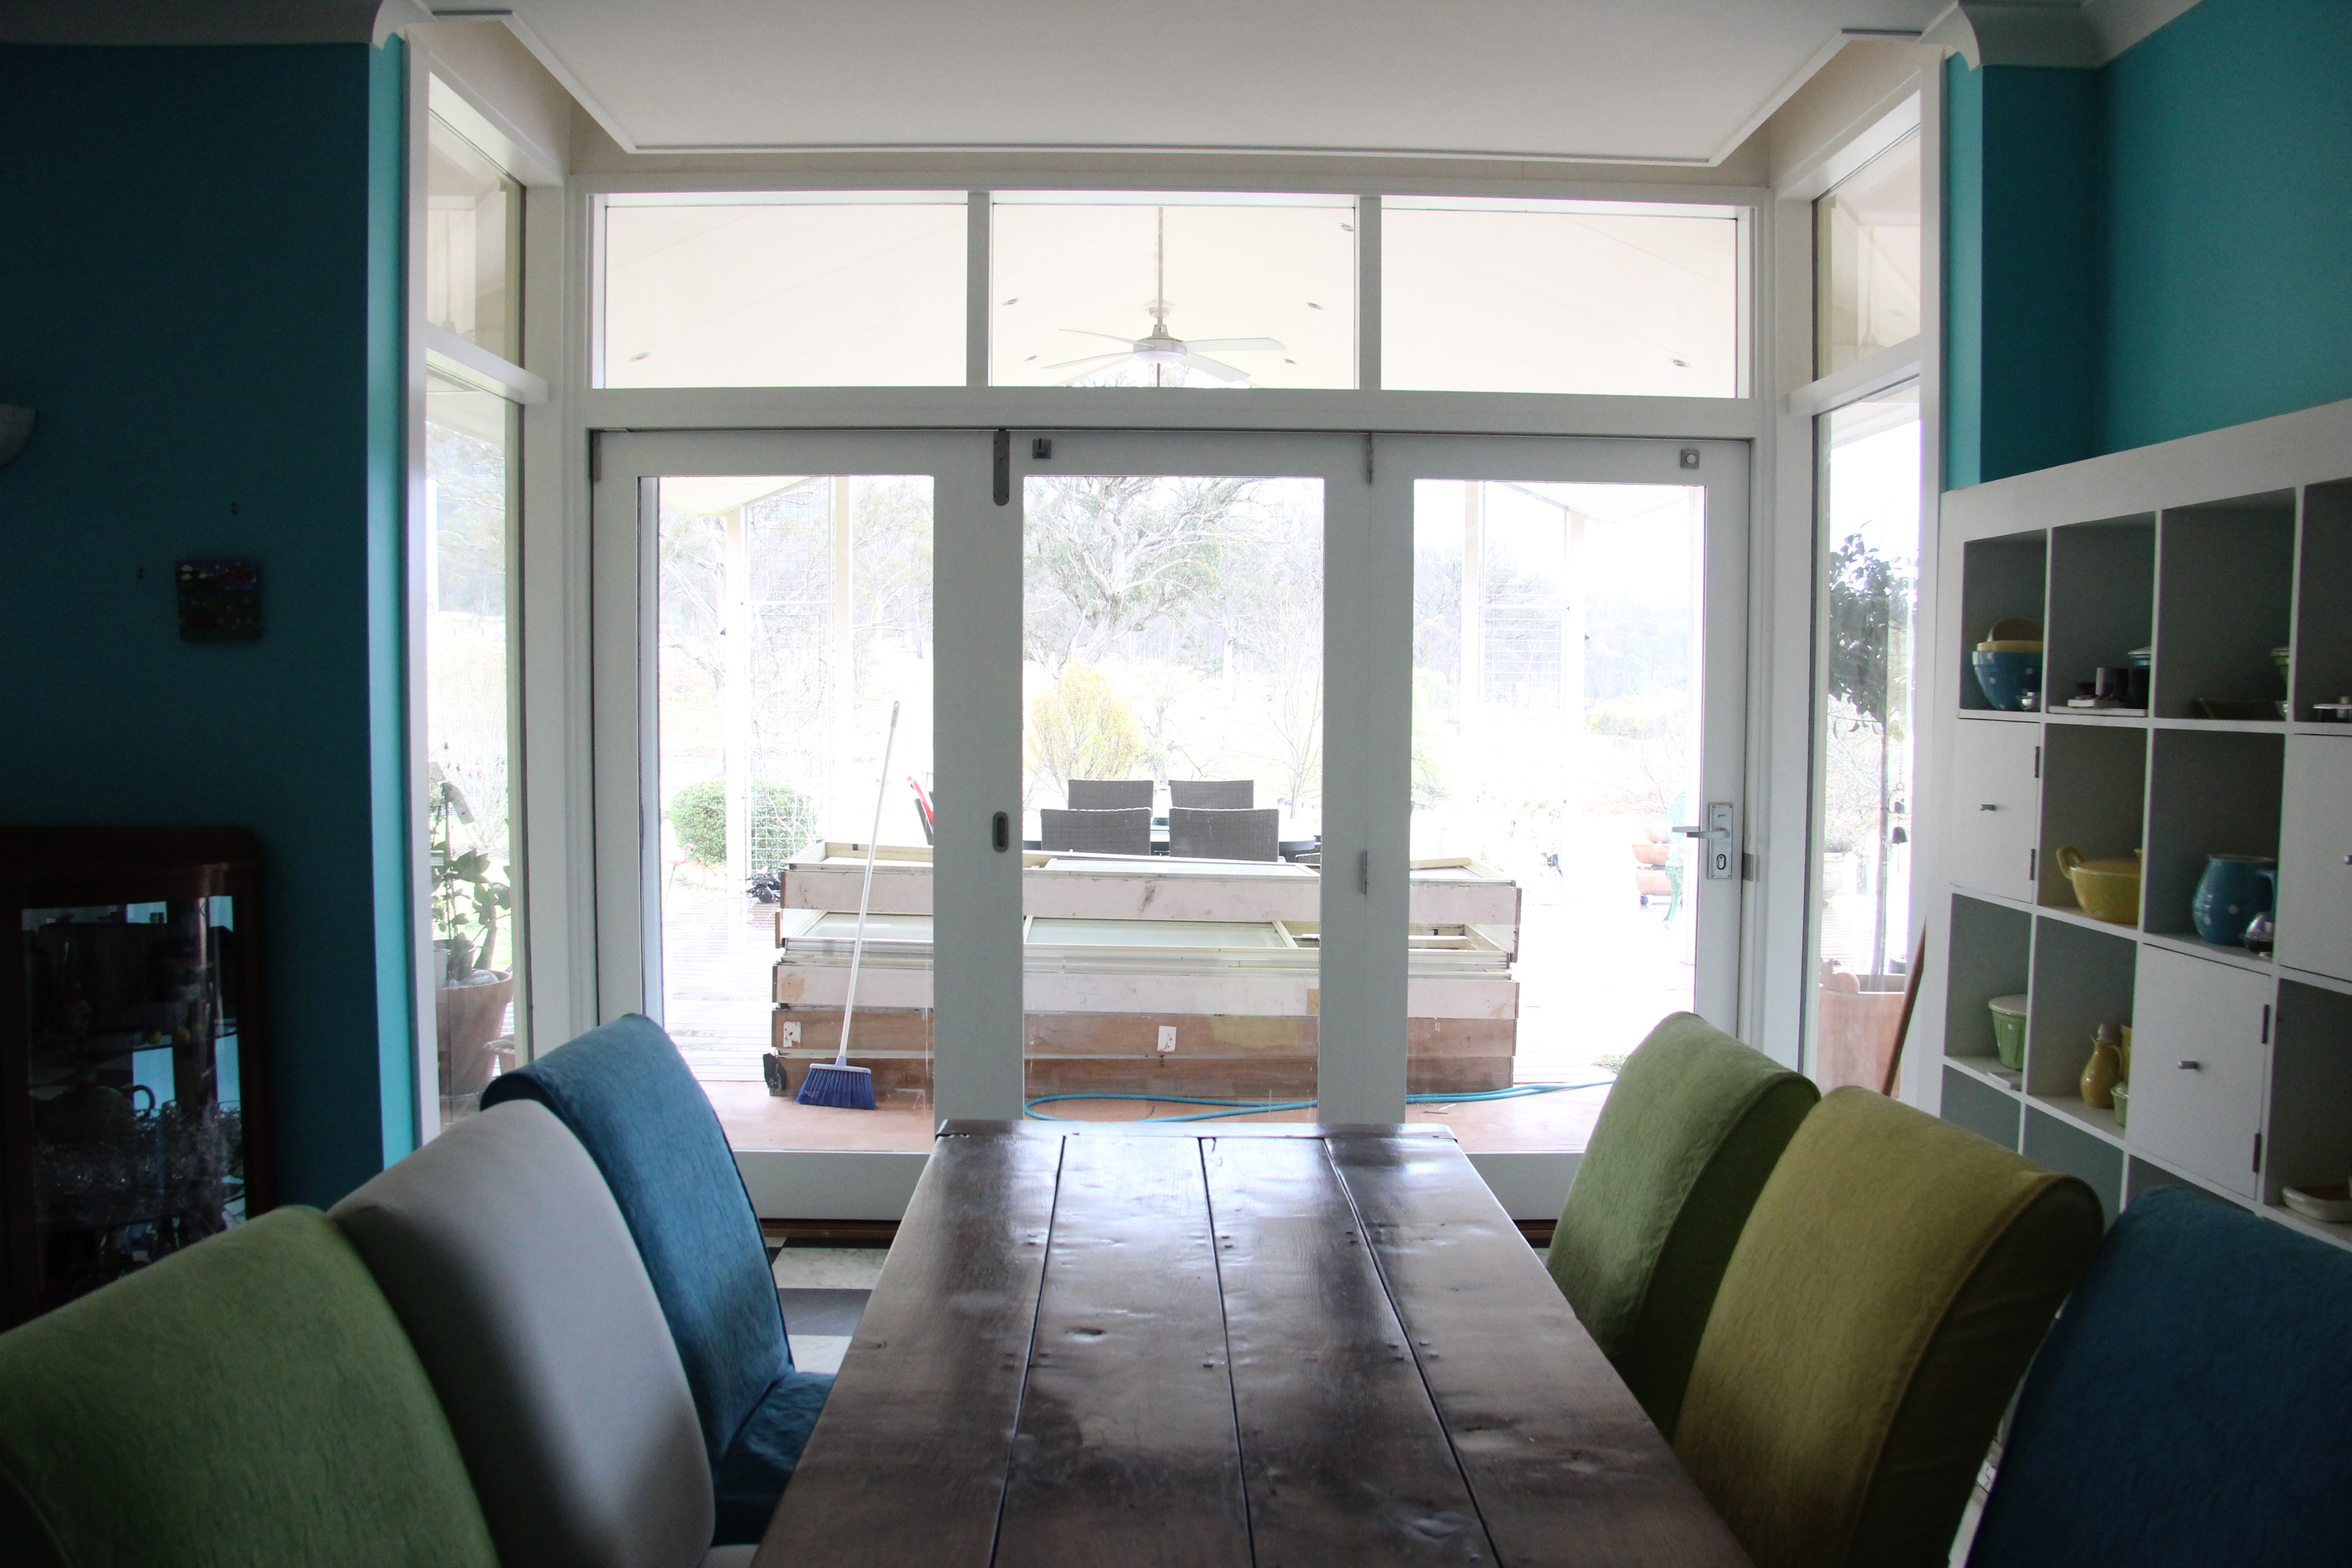 hannon-bifold-interior-with-table-in-foreground